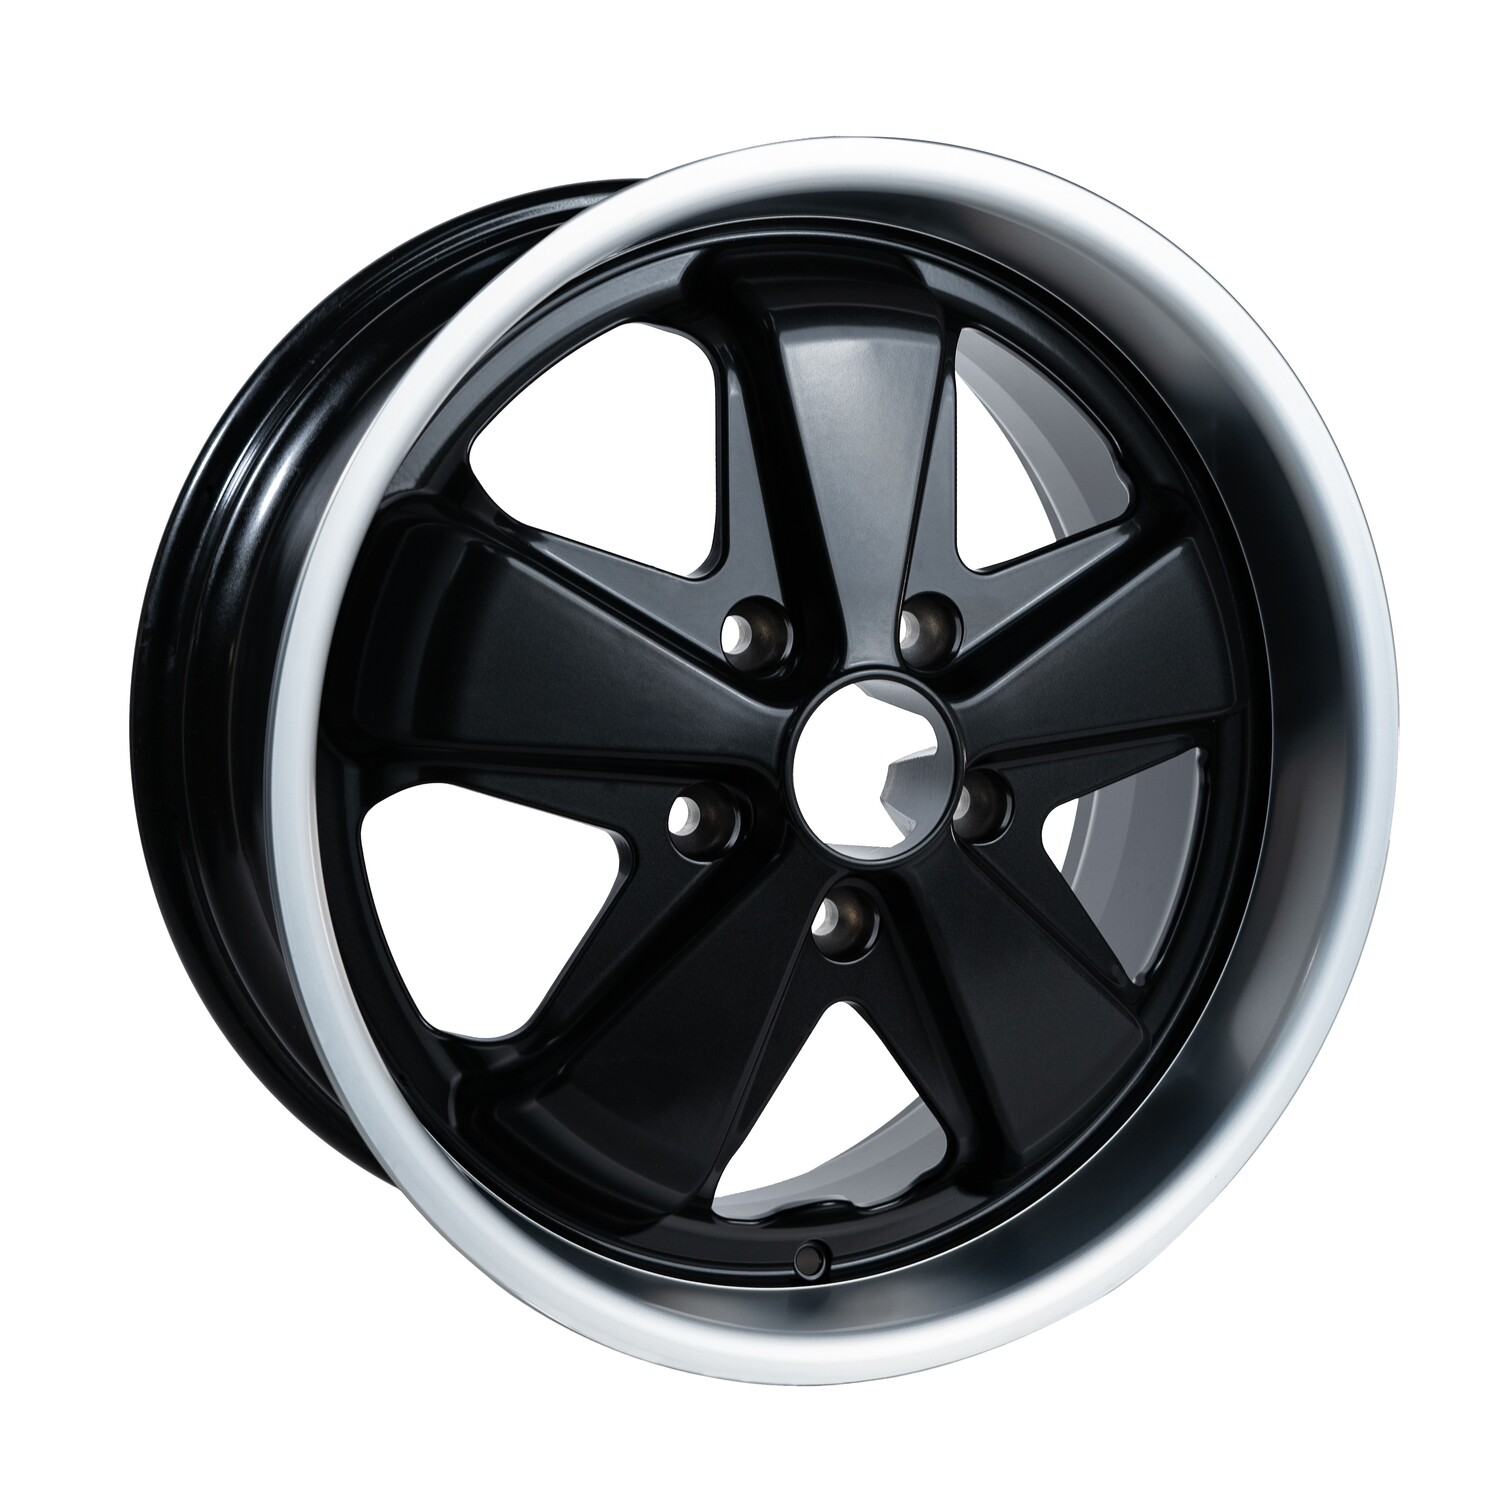 DP1885 Satin Black 18 x 8.5